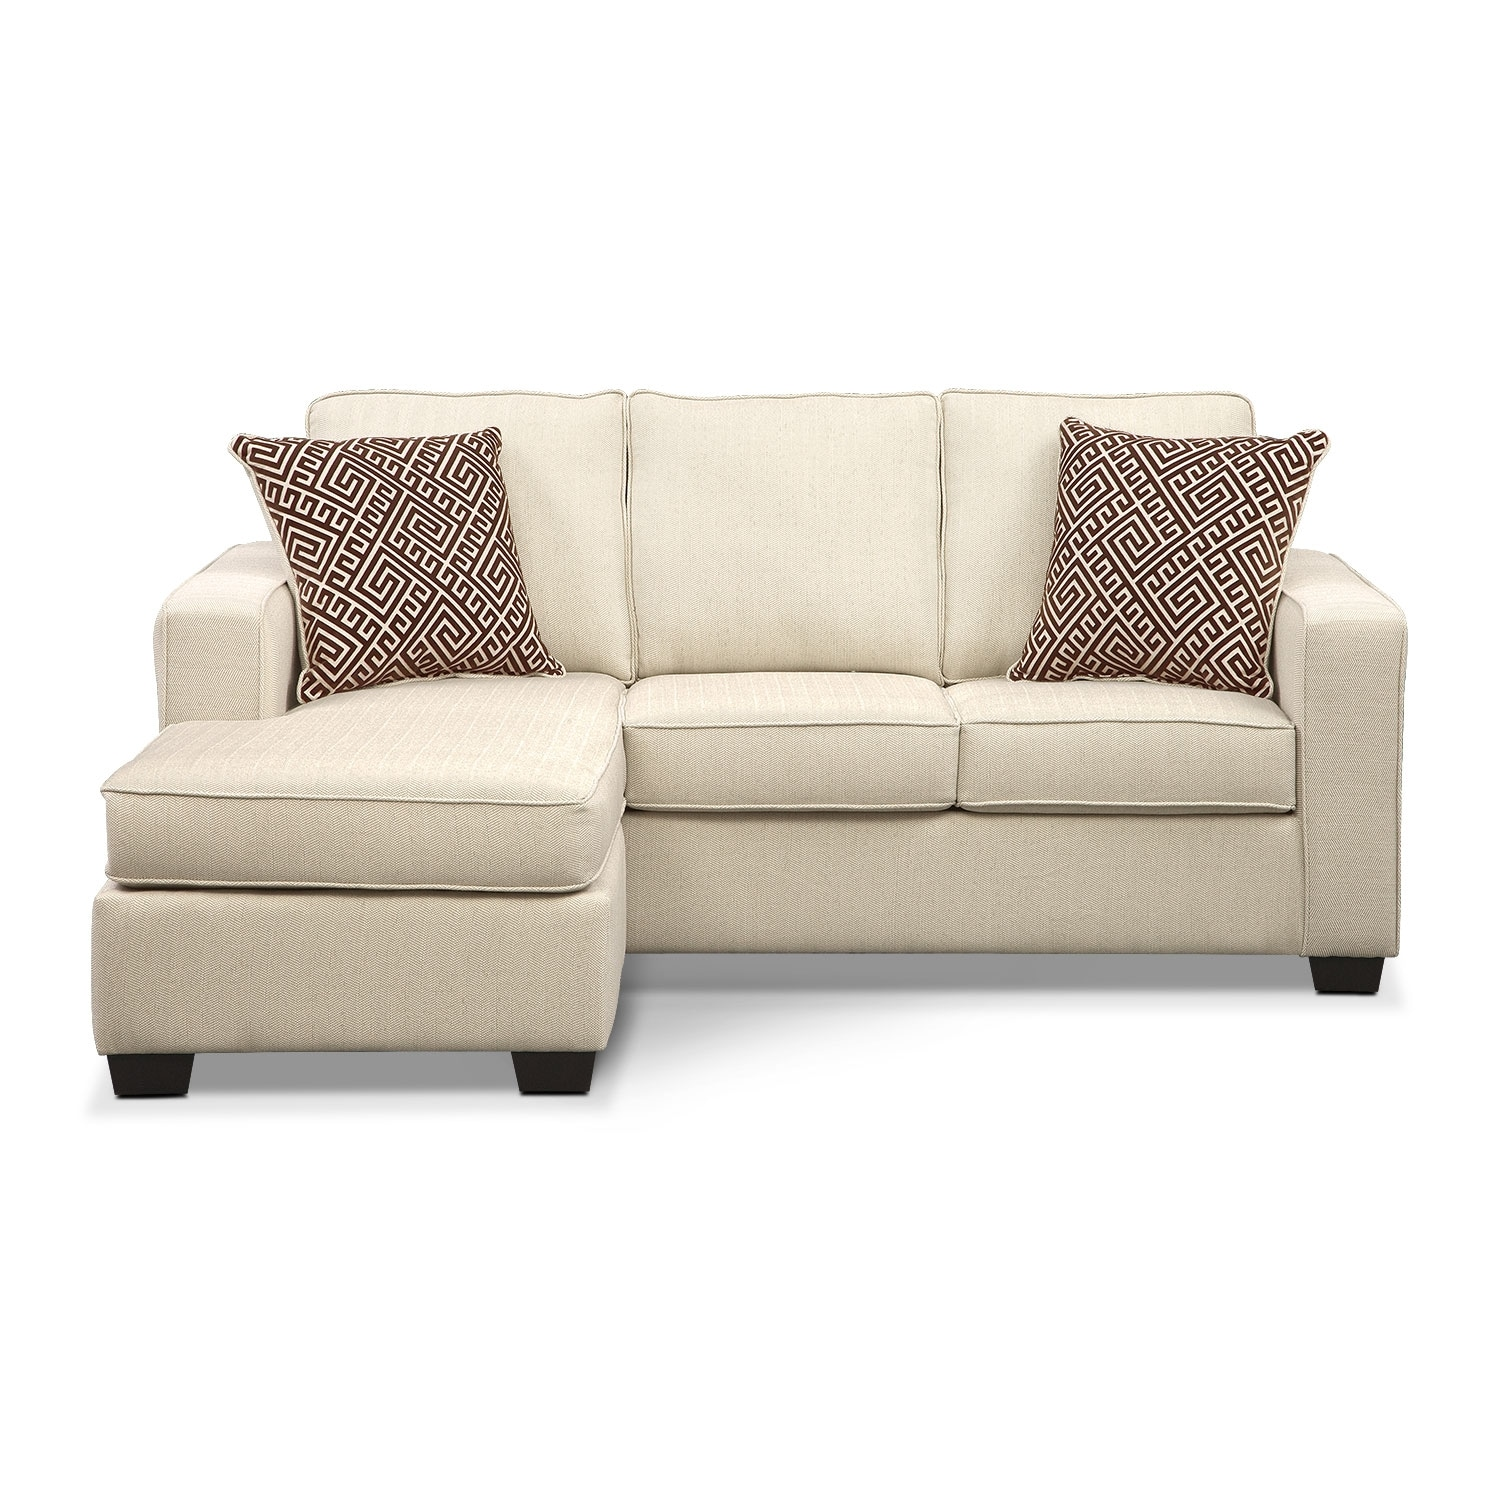 Sterling Beige Queen Memory Foam Sleeper Sofa W Chaise Value City Furniture